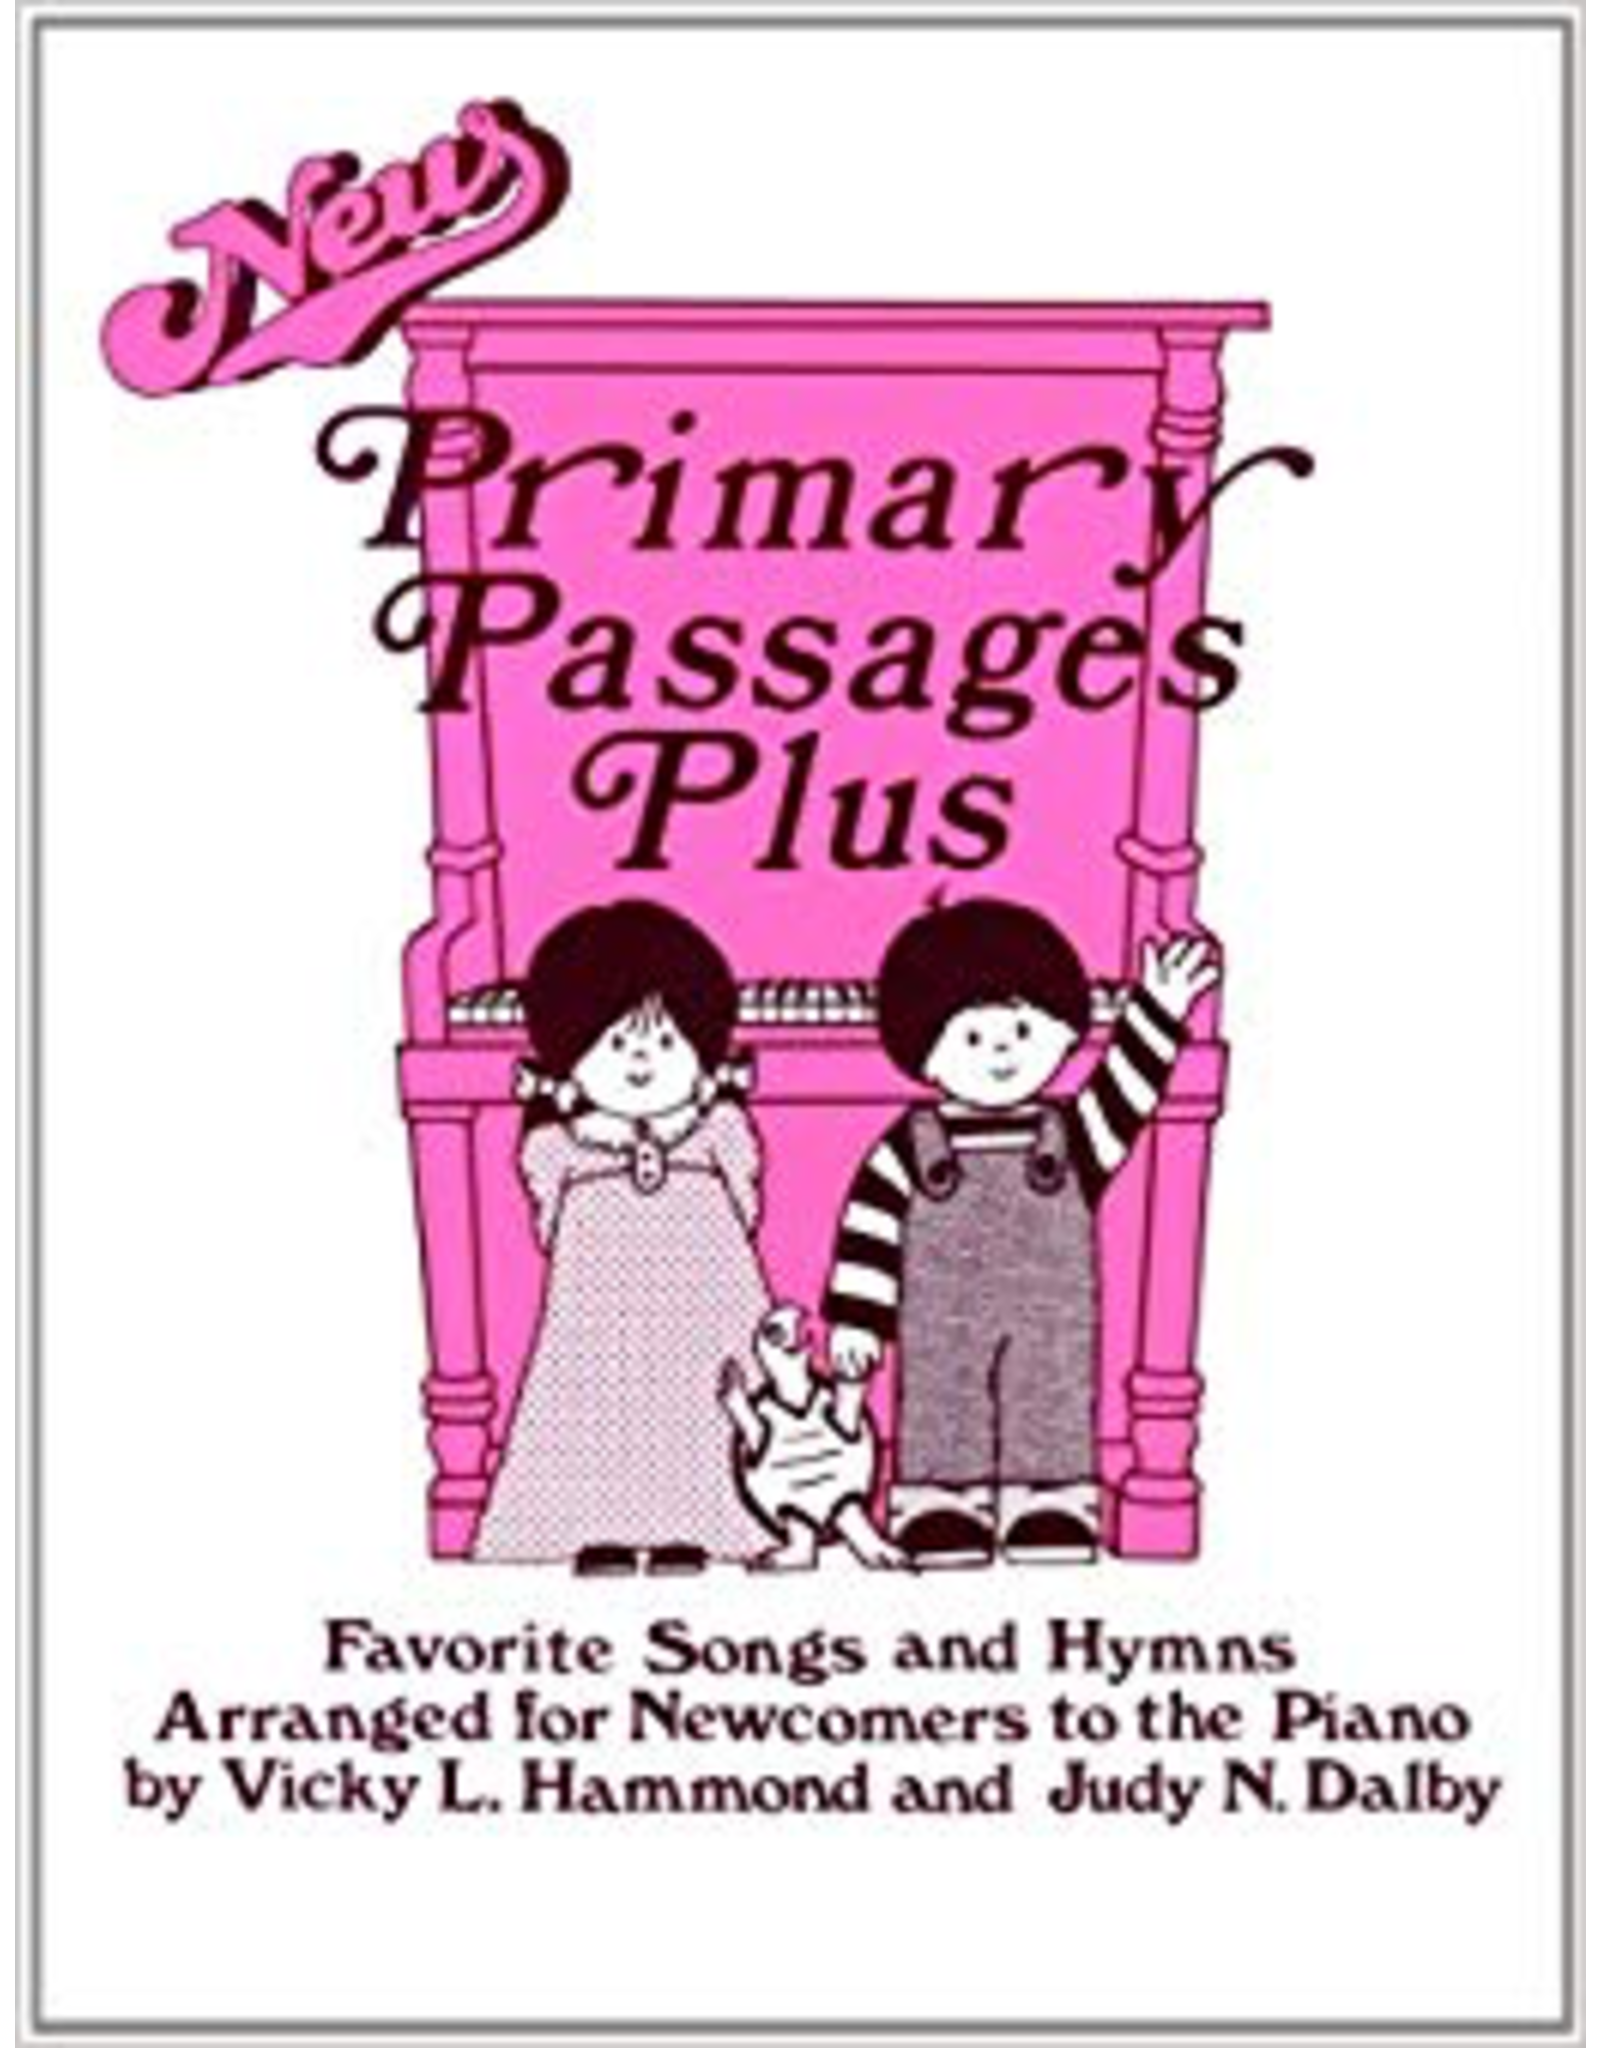 Primary Passages Primary Passages Plus Vicky L. Hammond and Judy N. Dalby